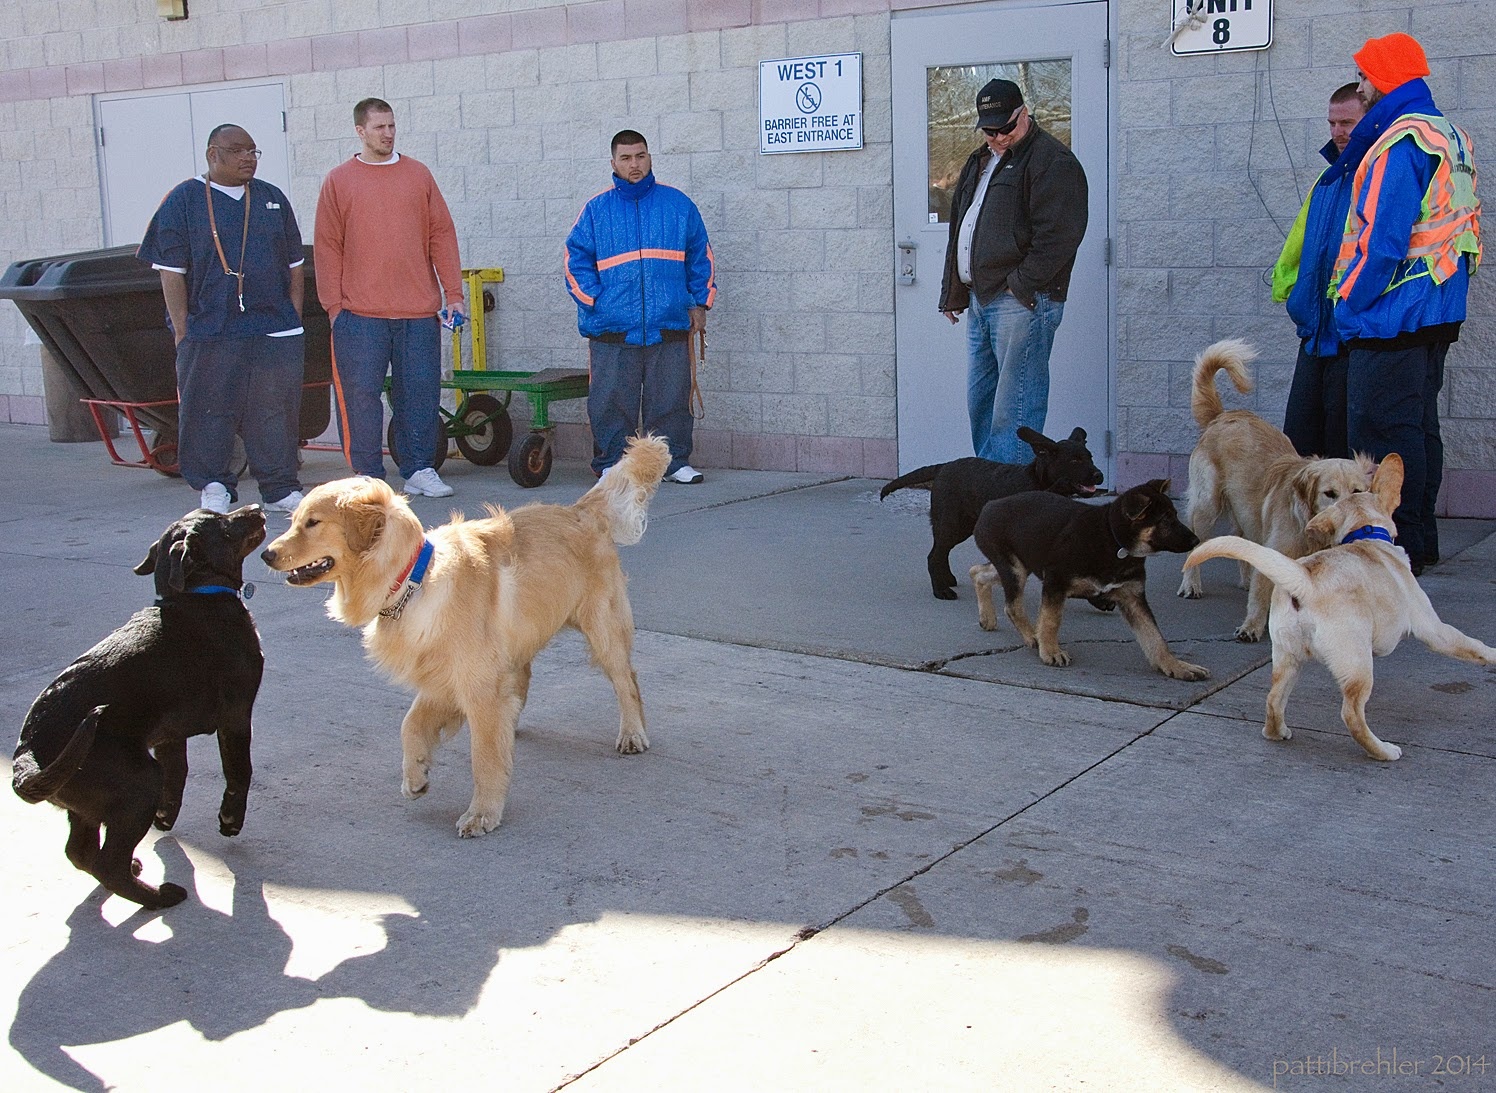 Six men are standing near a brick wallked builidng. In front of them on the cement are six puppies playing. A black lab and golden retriever are on the left side in front, another black lab, a german shepherd, another golden, and a yellow lab are grouped together on the right.